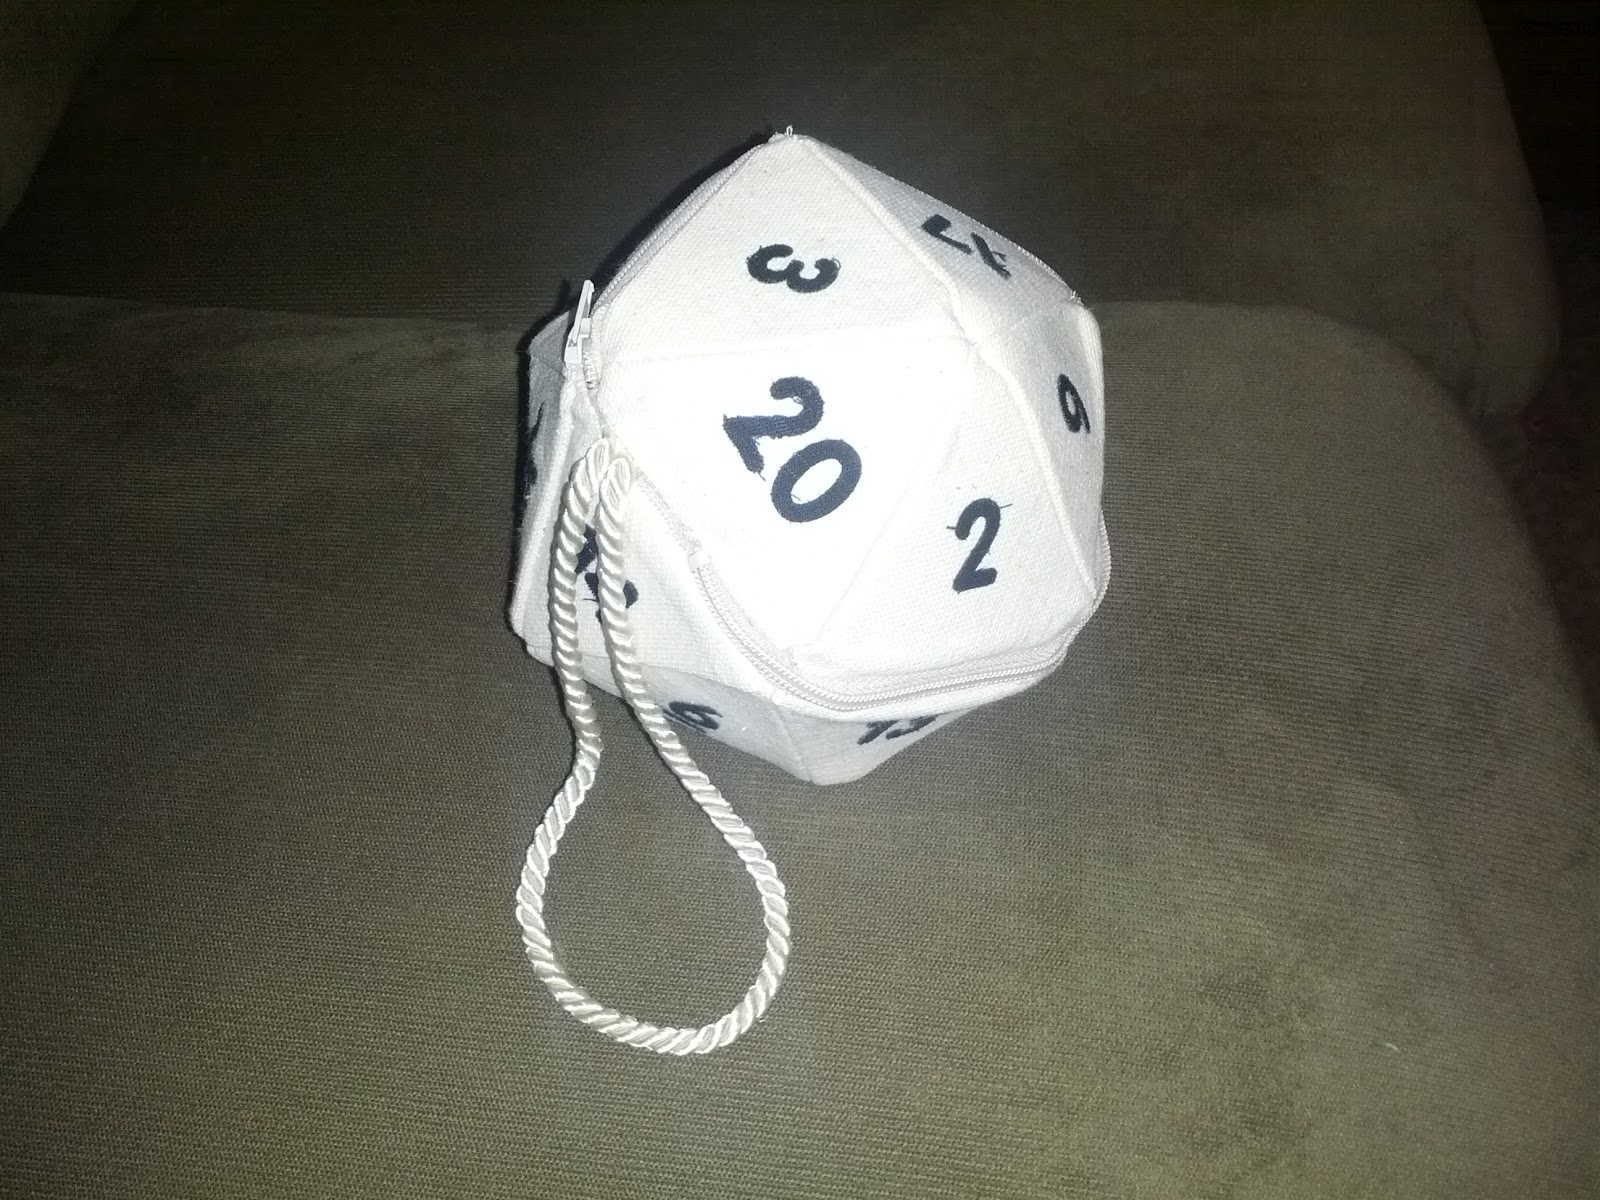 srd 20 dice bags patterns